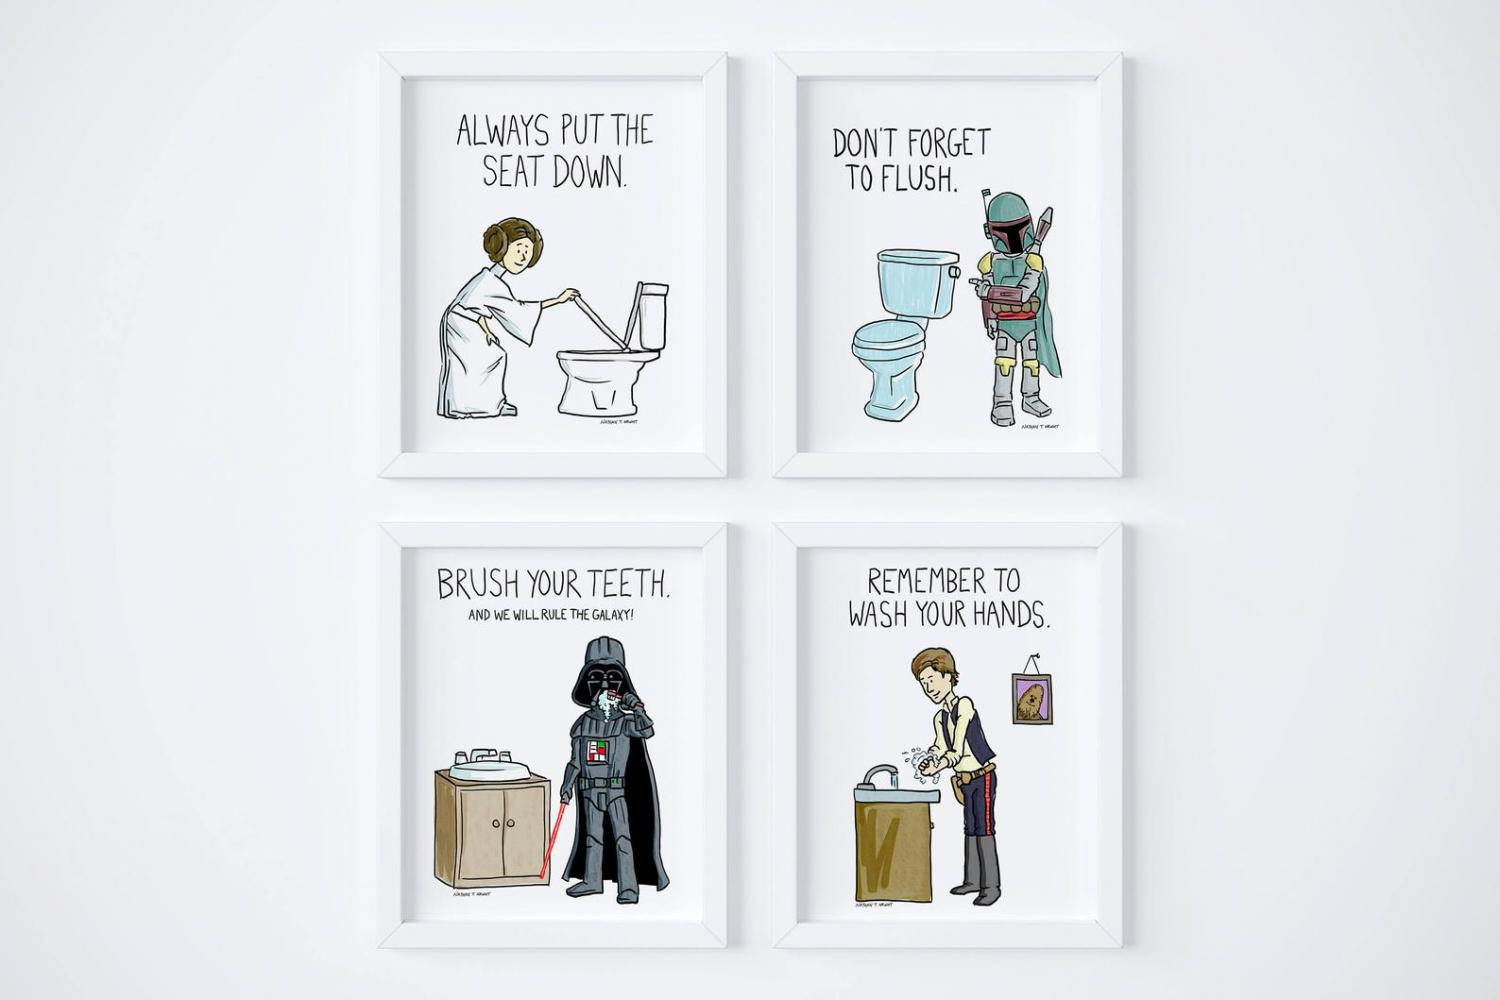 Use The Force Star Wars Toilet Bathroom Sign - Funny Star Wars Bathroom Sign